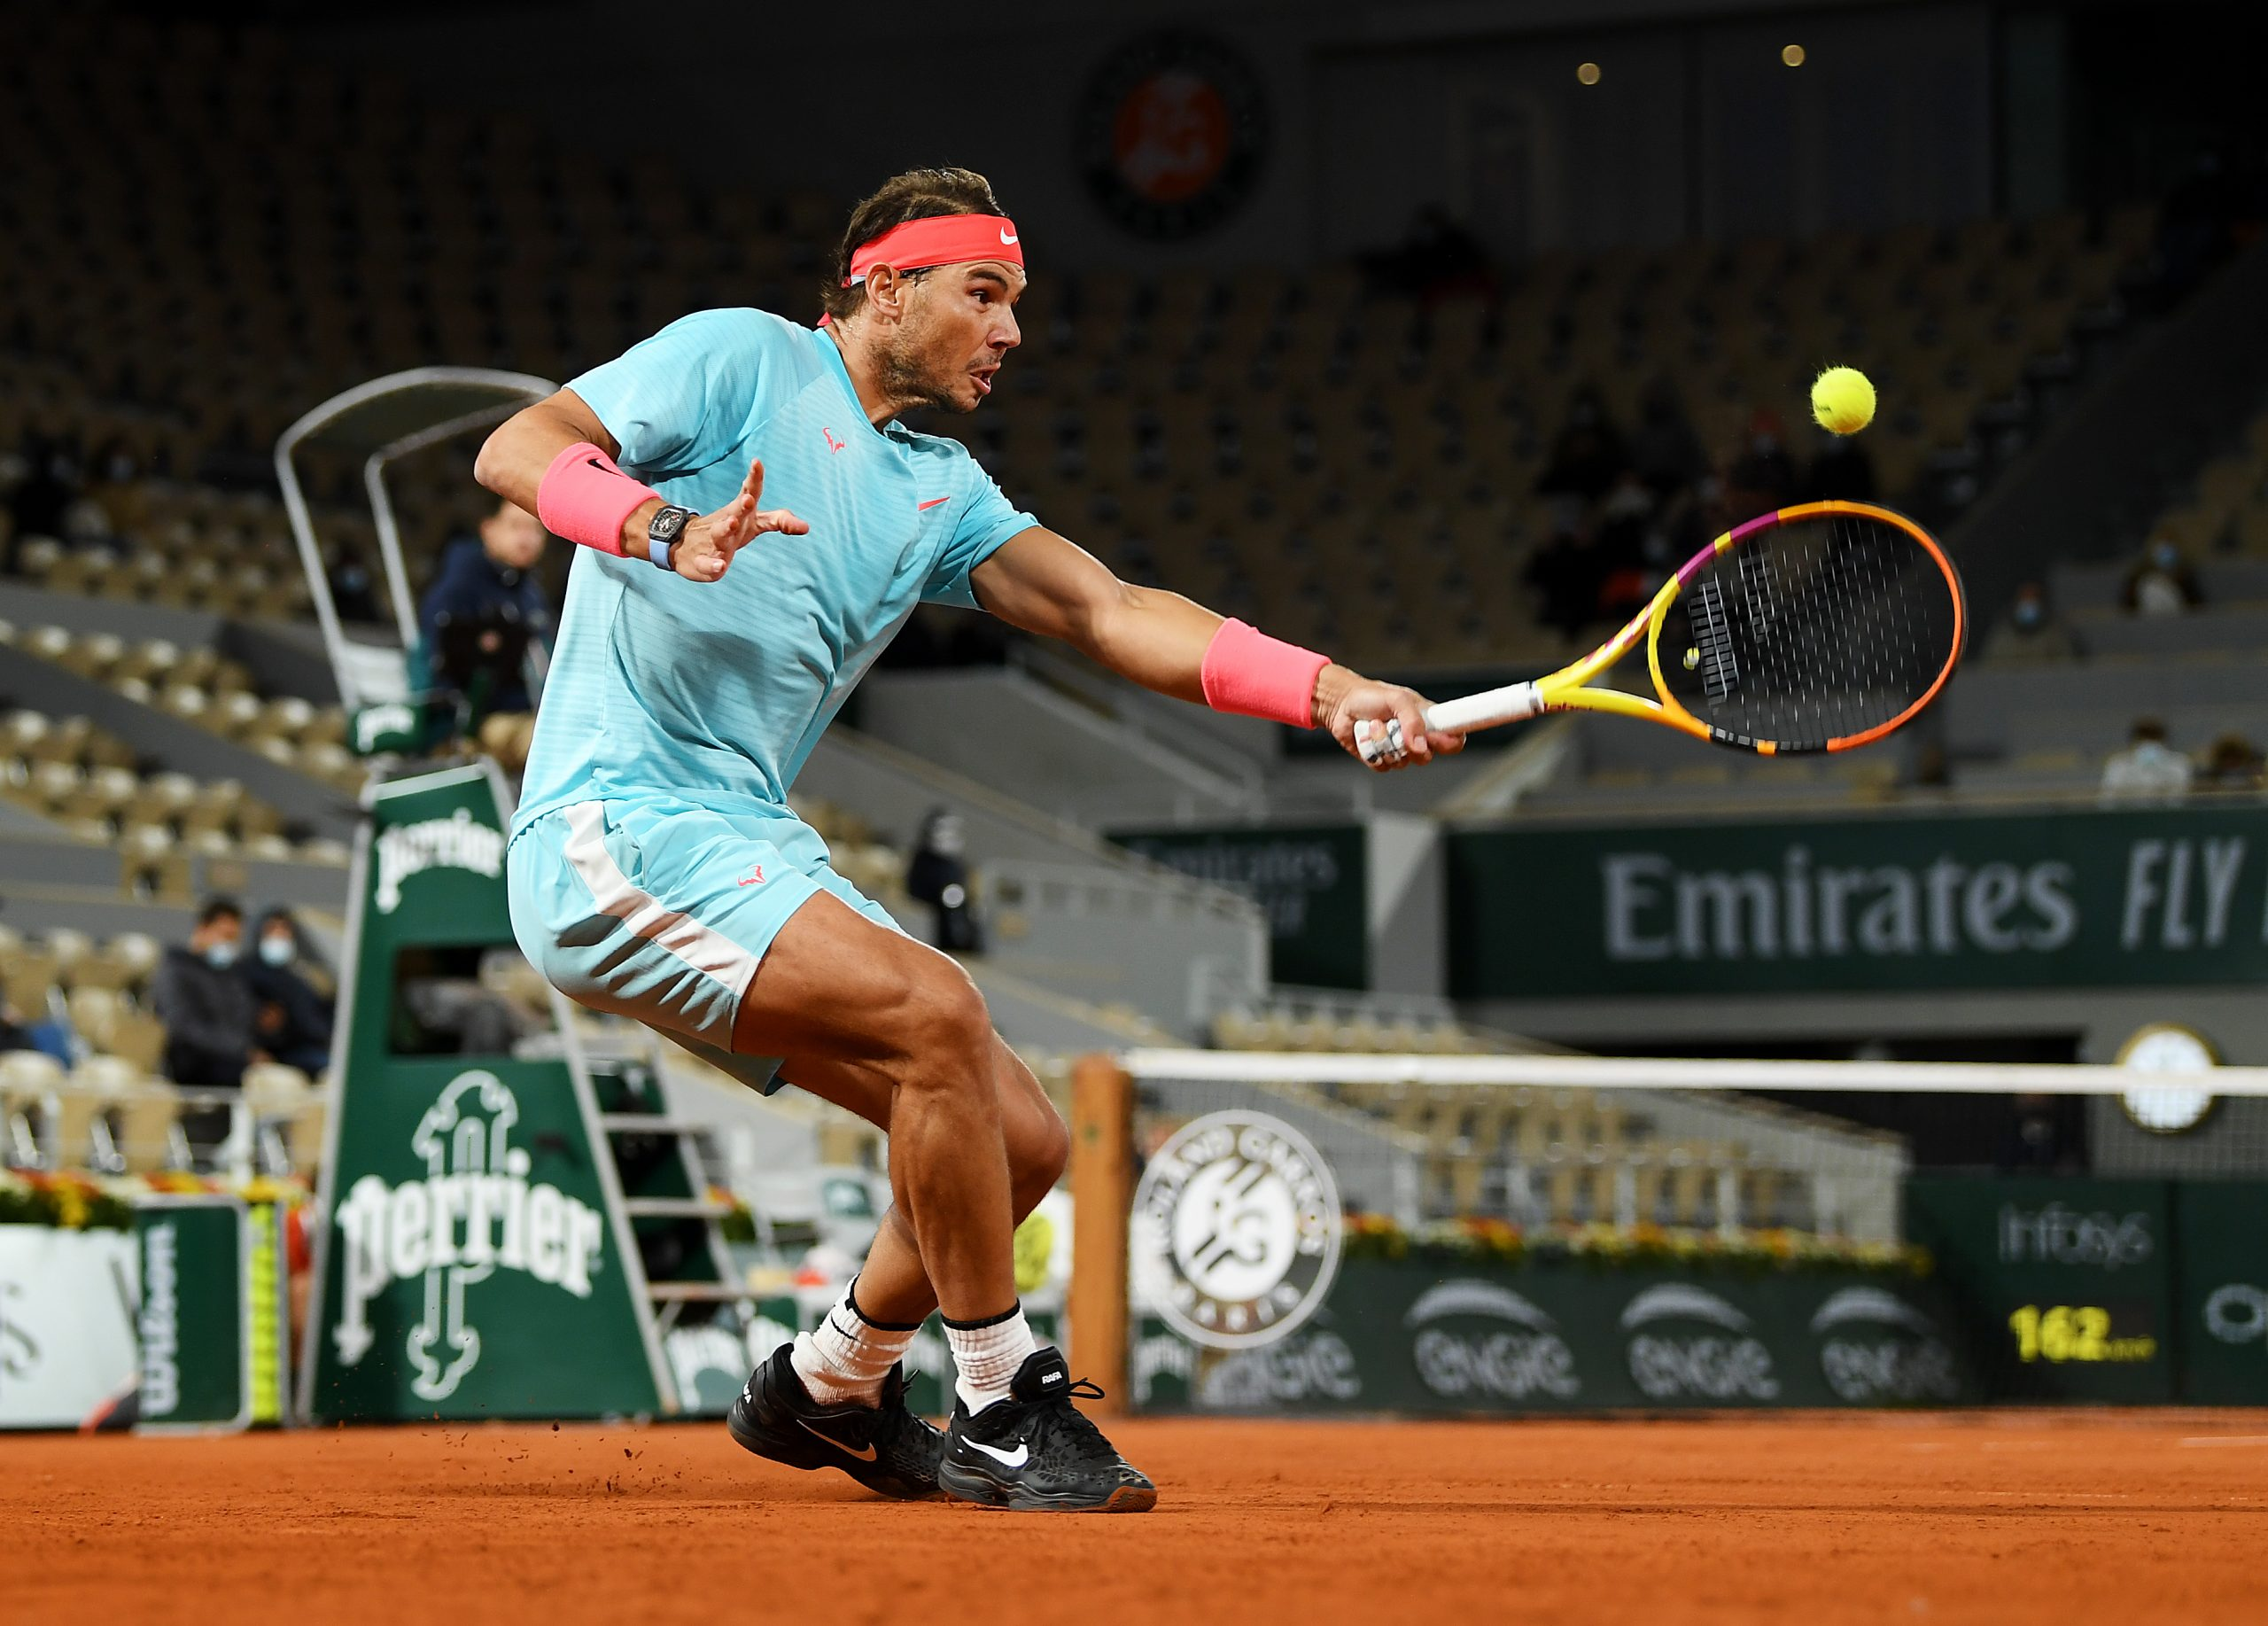 PARIS, FRANCE - OCTOBER 06: Rafael Nadal of Spain plays a backhand during his Men's Singles quarterfinals match against Jannik Sinner of Italy on day ten of the 2020 French Open at Roland Garros on October 06, 2020 in Paris, France. (Photo by Shaun Botterill/Getty Images)